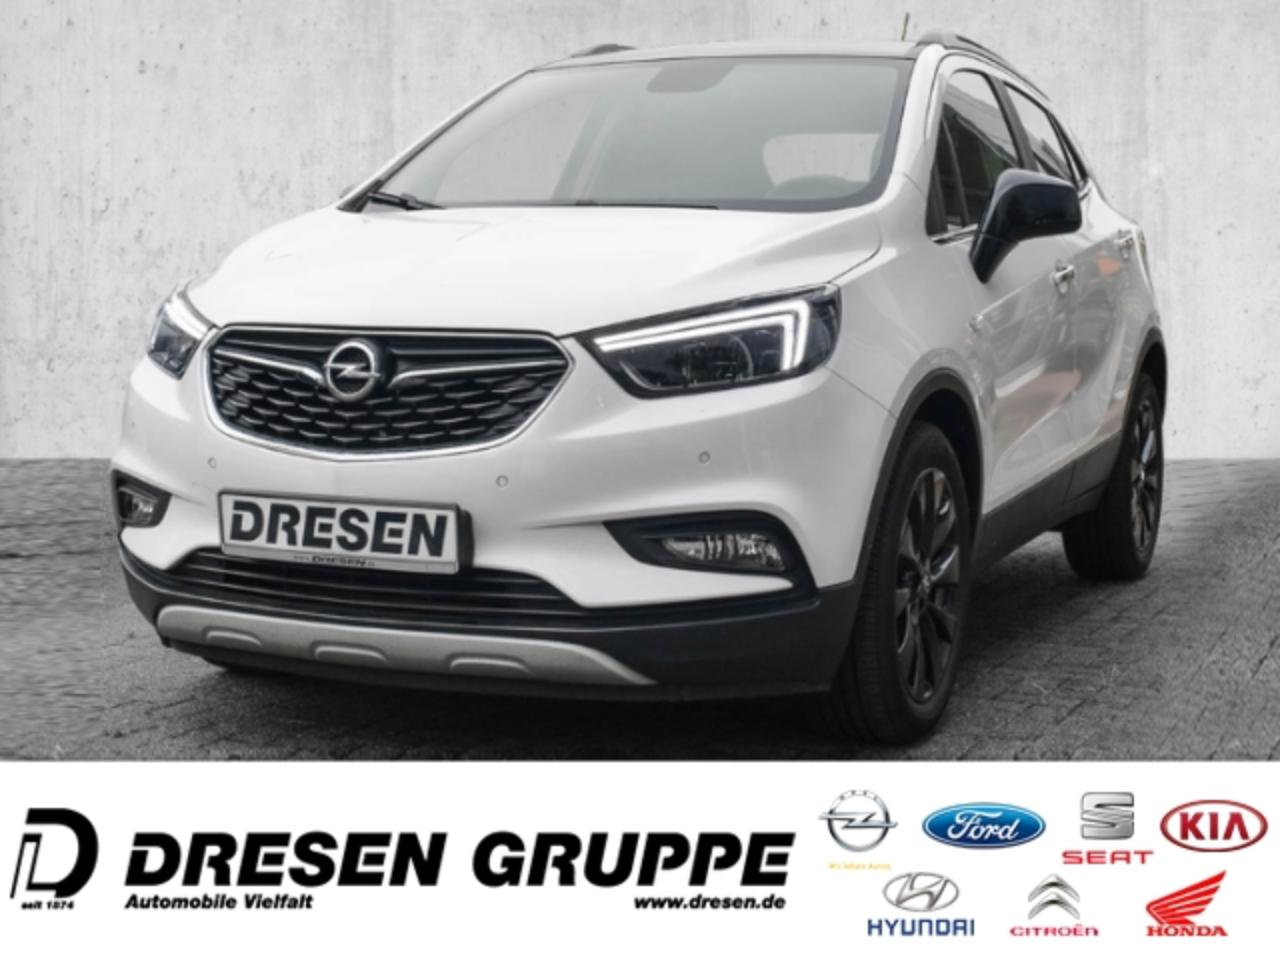 Opel Mokka X 1.4 Turbo Color Innovation,LED-SCHEINWERFER,NAVI90